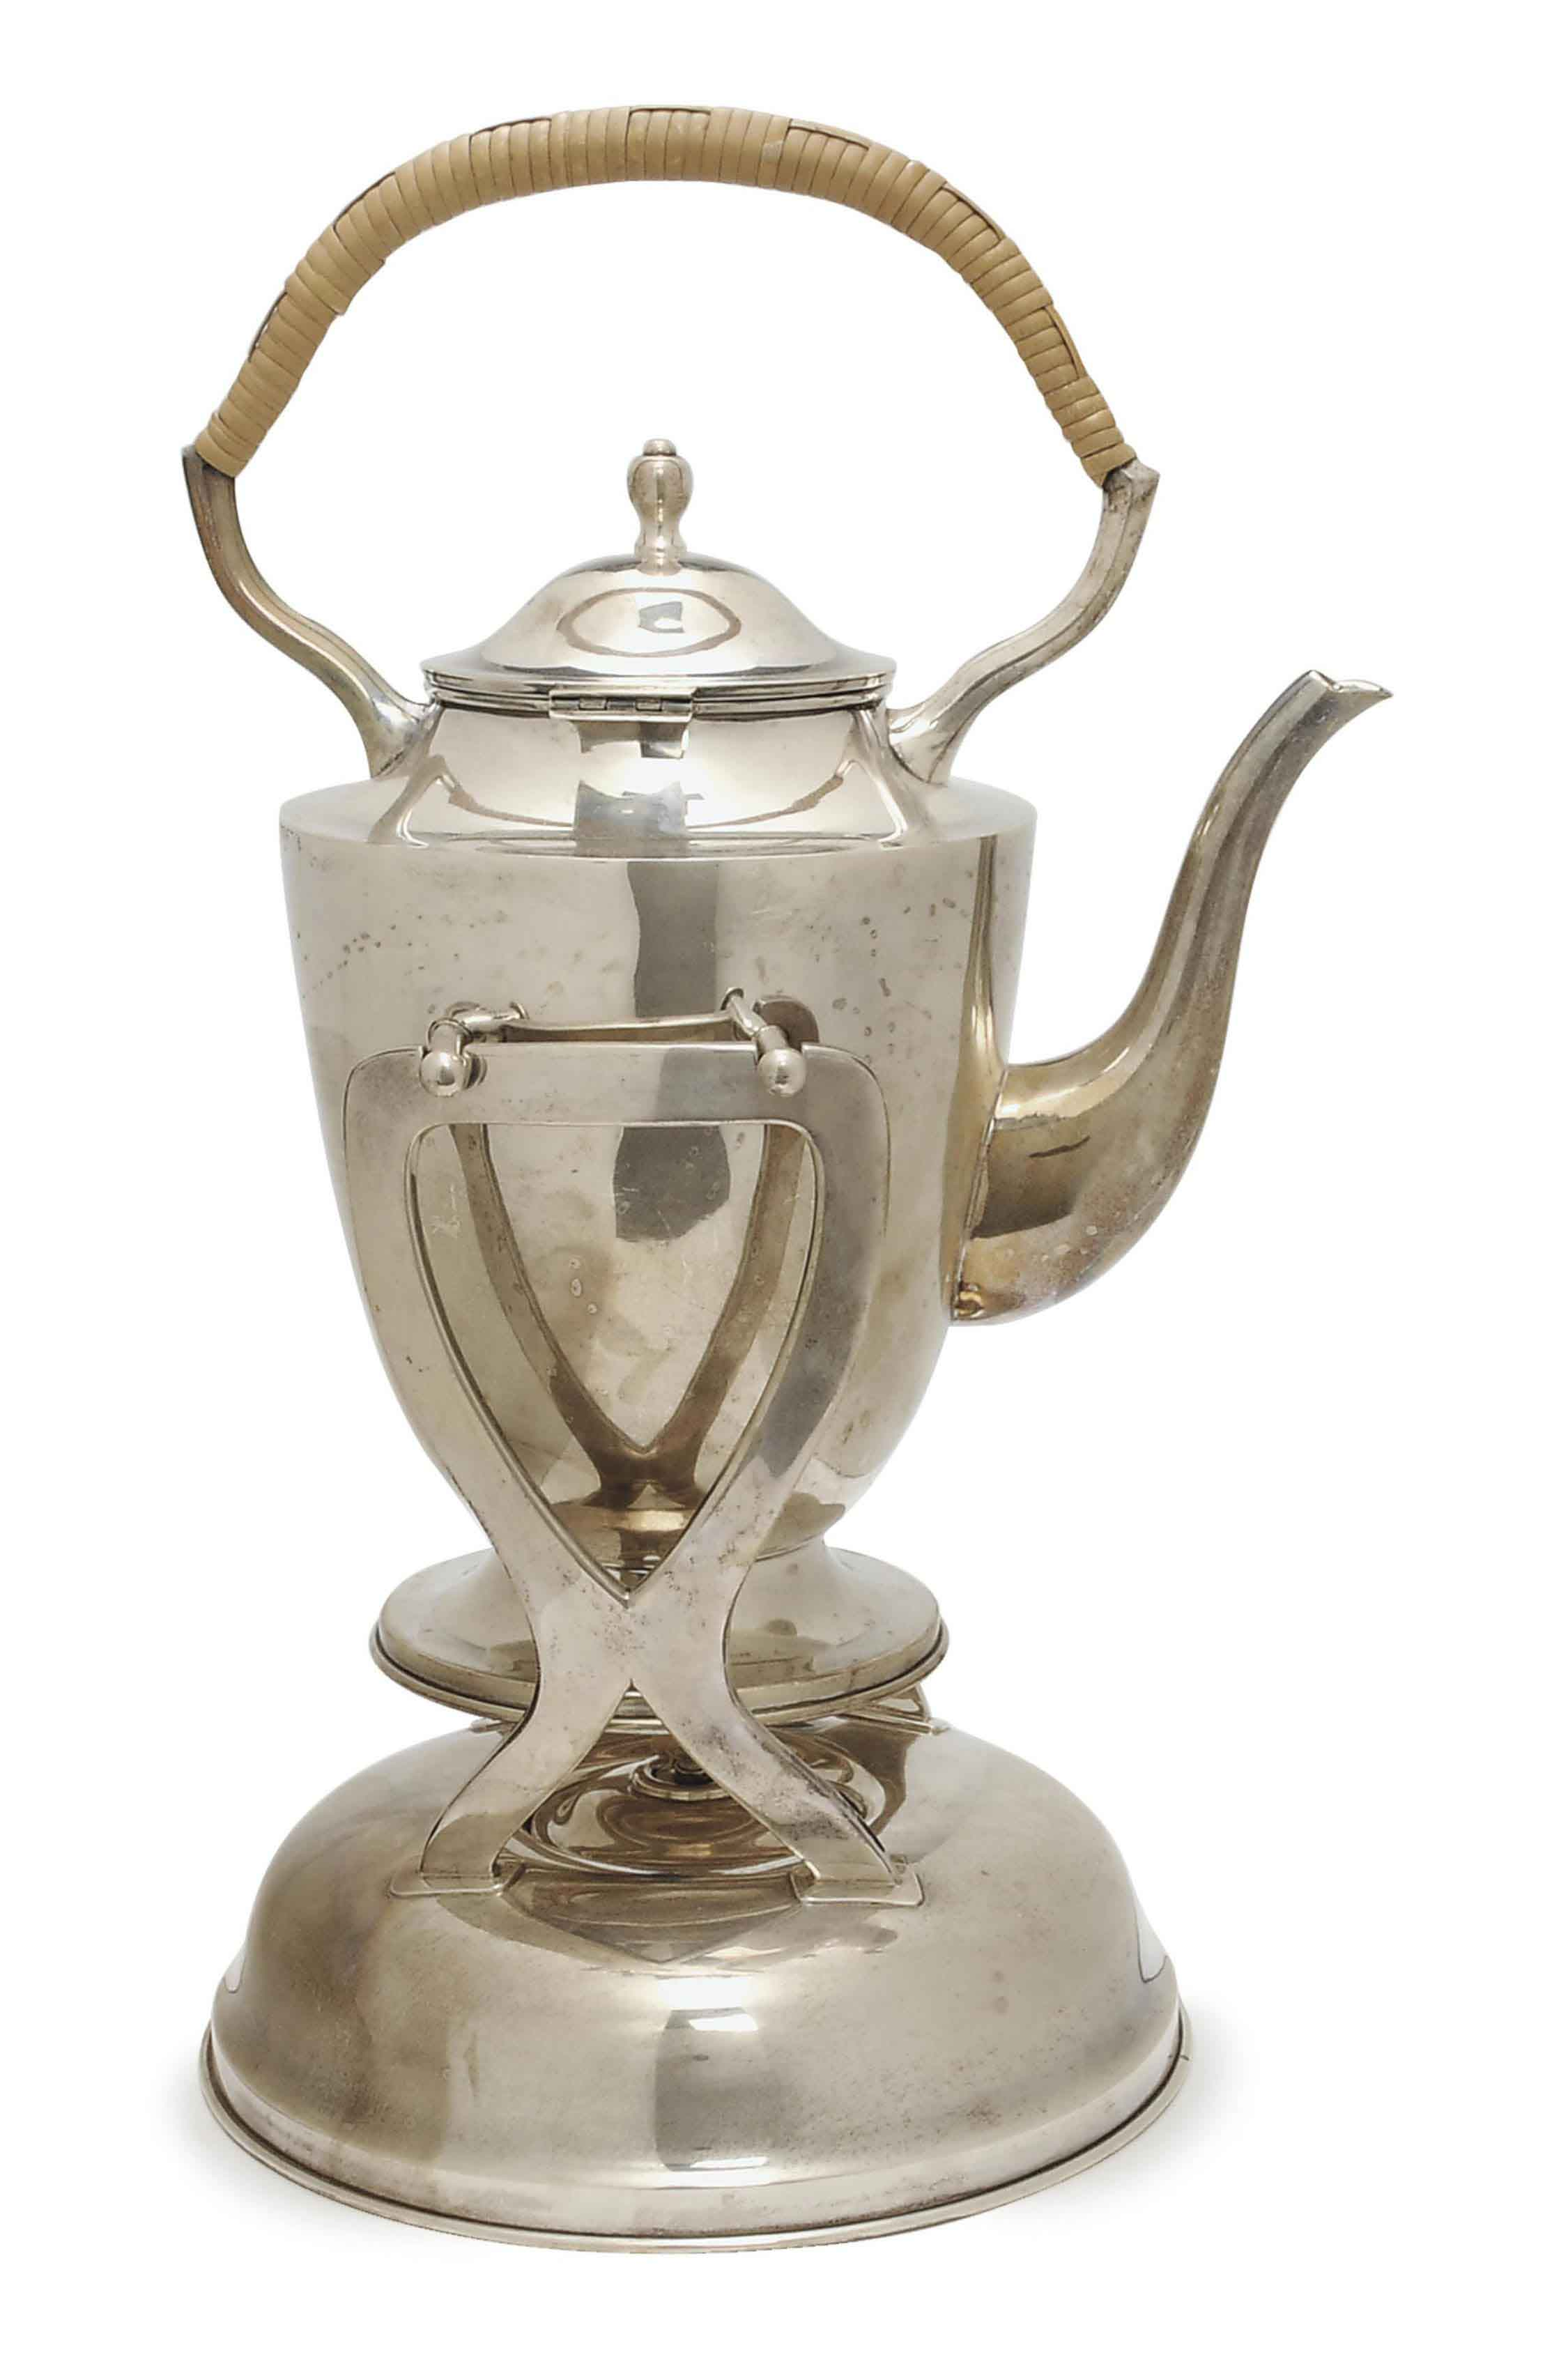 A MEXICAN SILVER HOT WATER KETTLE WITH HINGED COVER ON STAND,